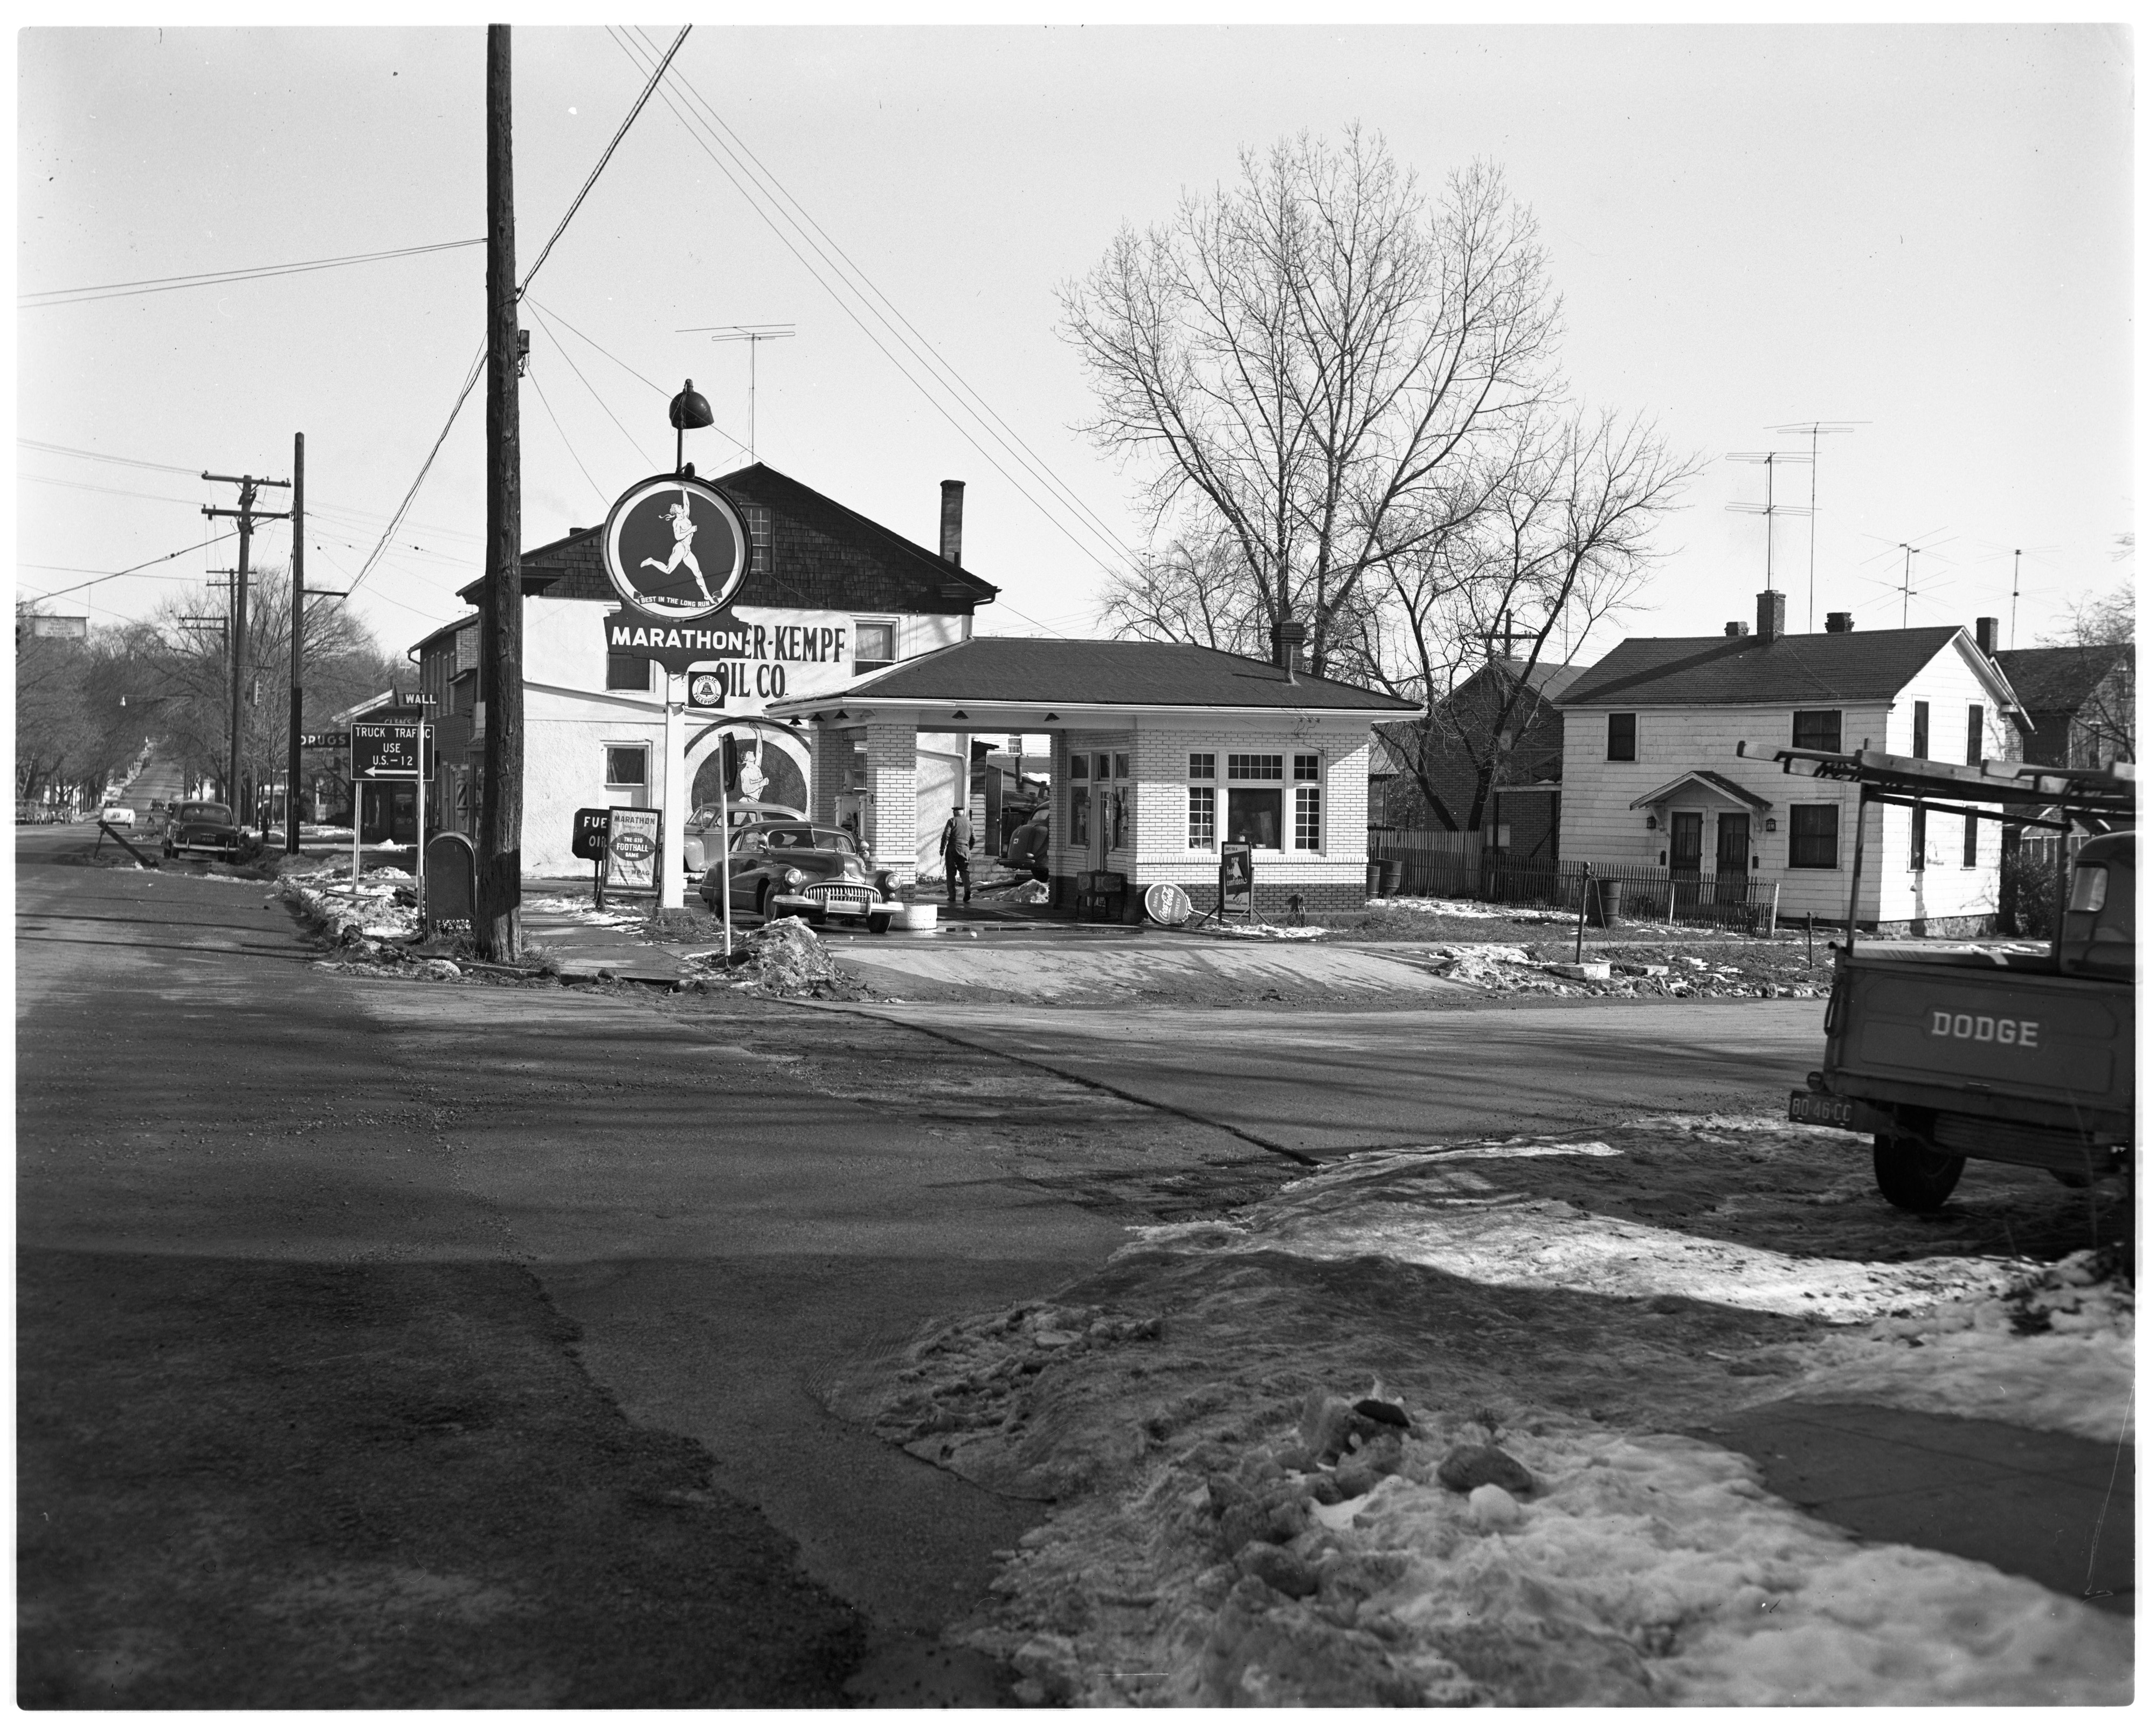 Staebler-Kempf Oil Co. and Marathon Station, November 1951 image